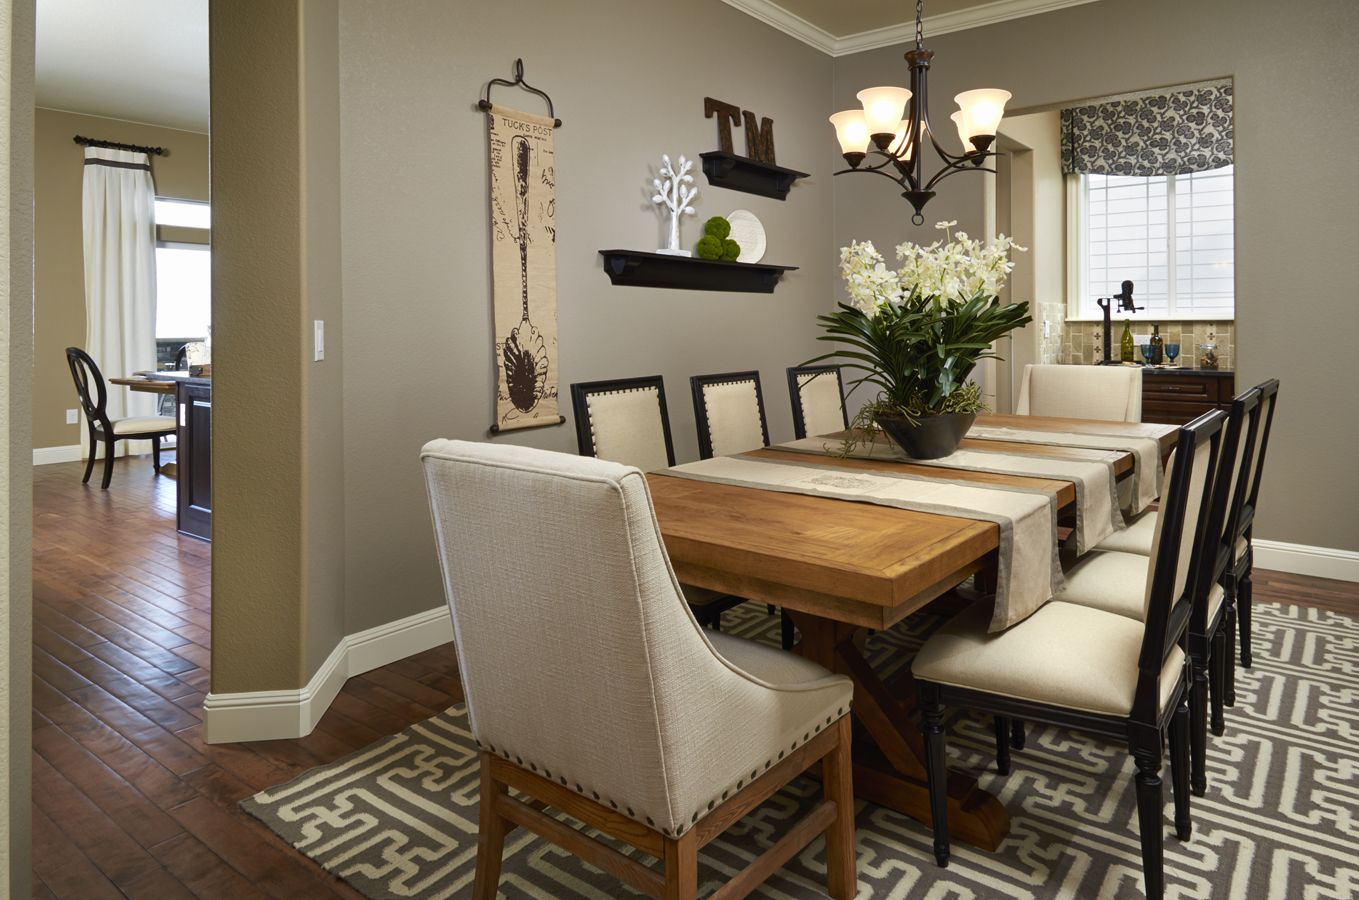 images about formal dining room on pinterest runners formal dining room designs - Dining Room Design Ideas